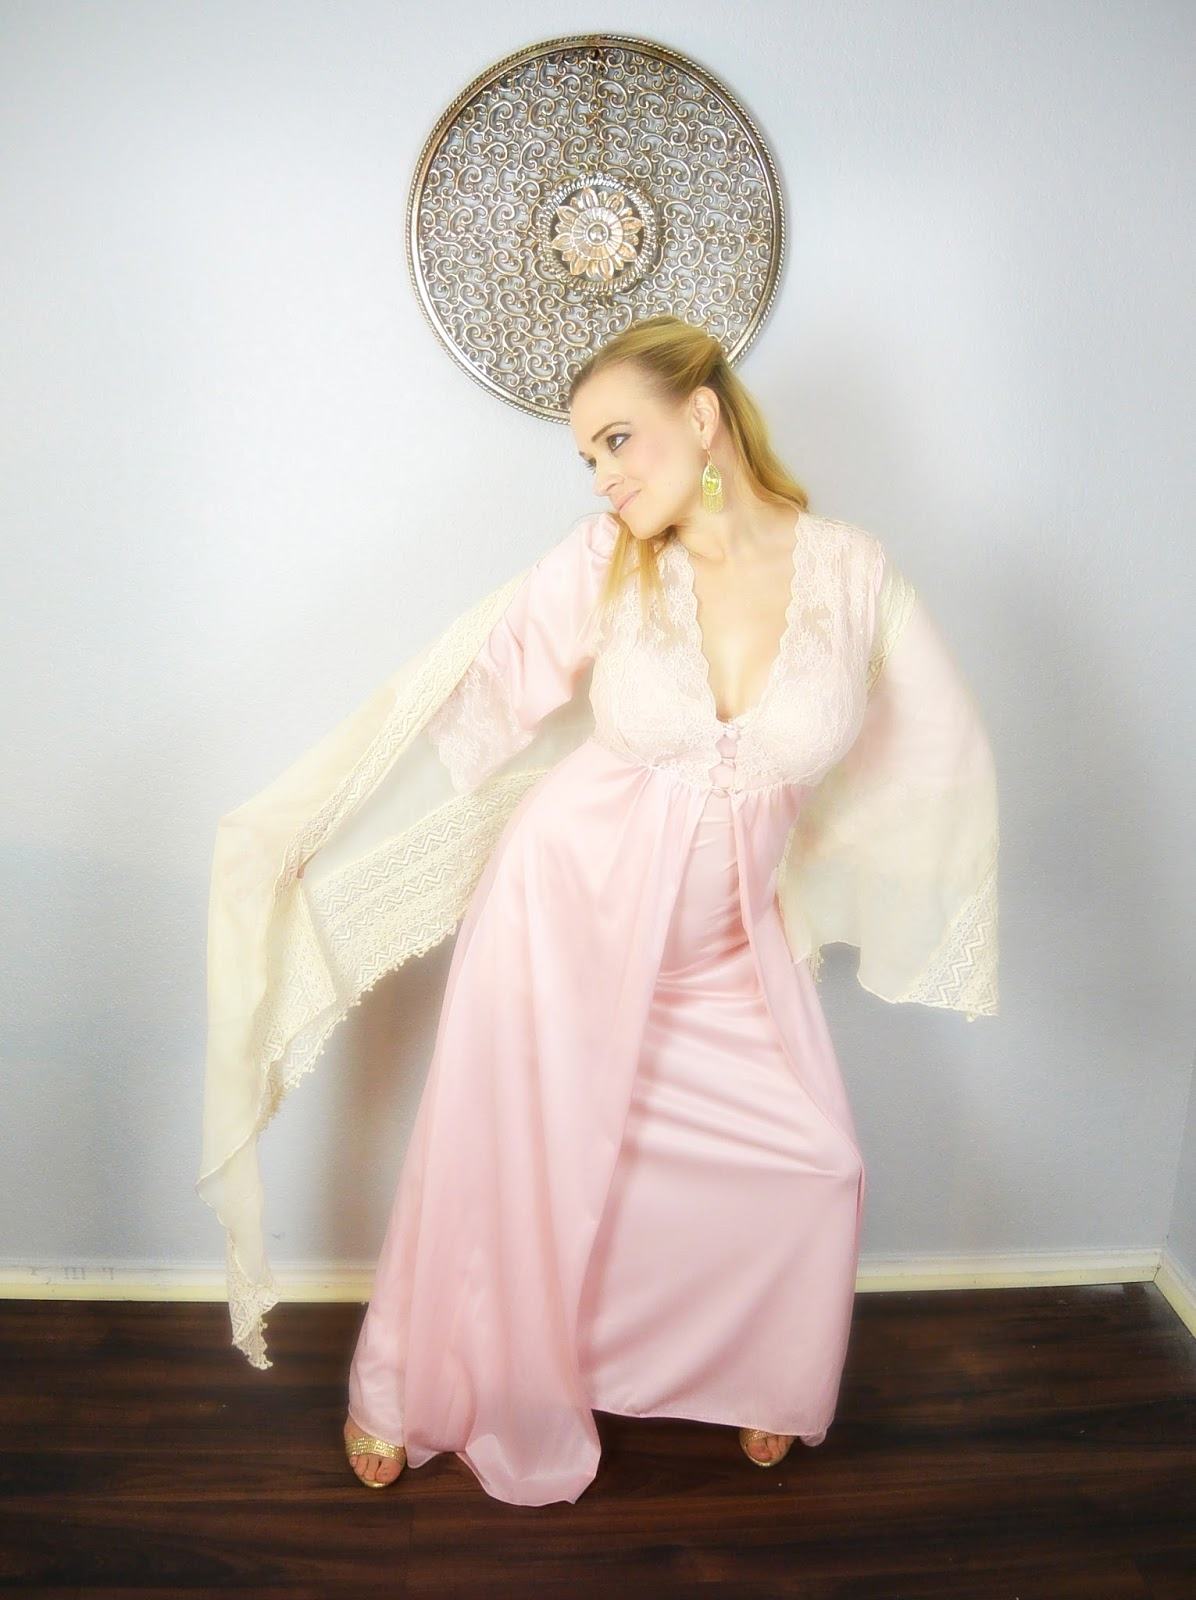 blonde modeling vintage pink lace nightgown and scarf with wall art